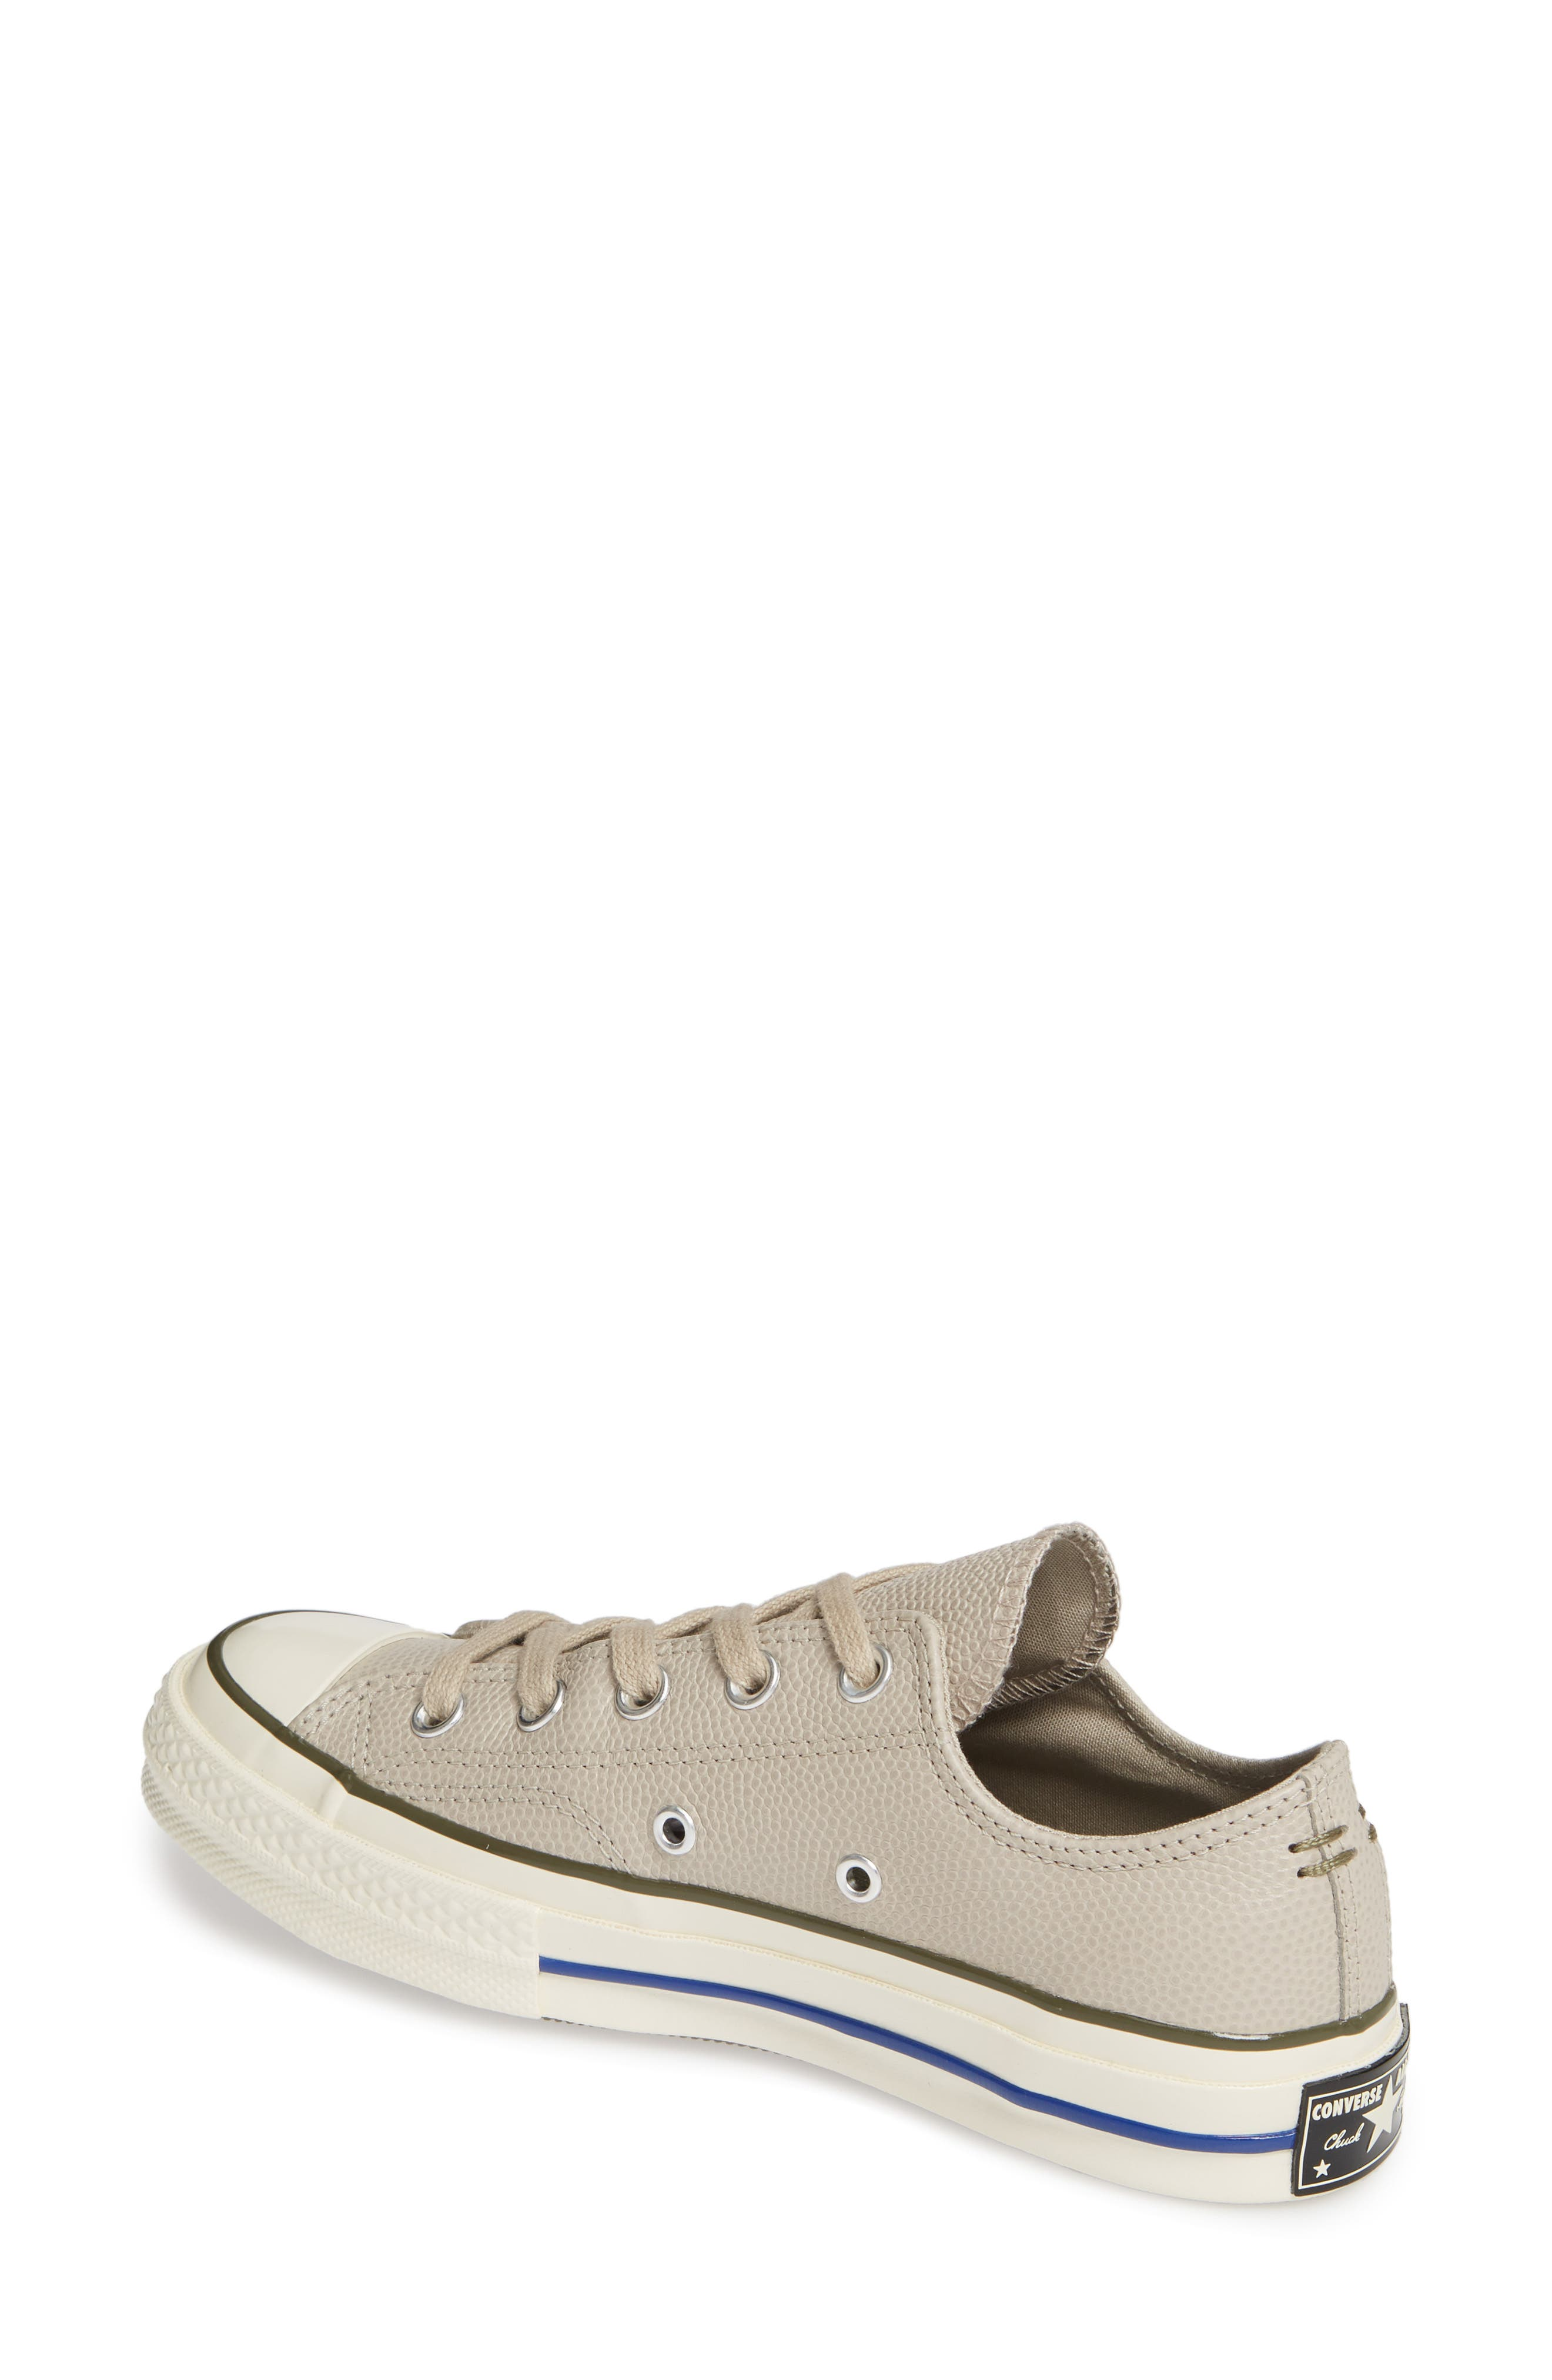 CONVERSE, Chuck Taylor<sup>®</sup> All Star<sup>®</sup> Chuck 70 Ox Leather Sneaker, Alternate thumbnail 2, color, PAPYRUS/ FIELD SURPLUS/ EGRET